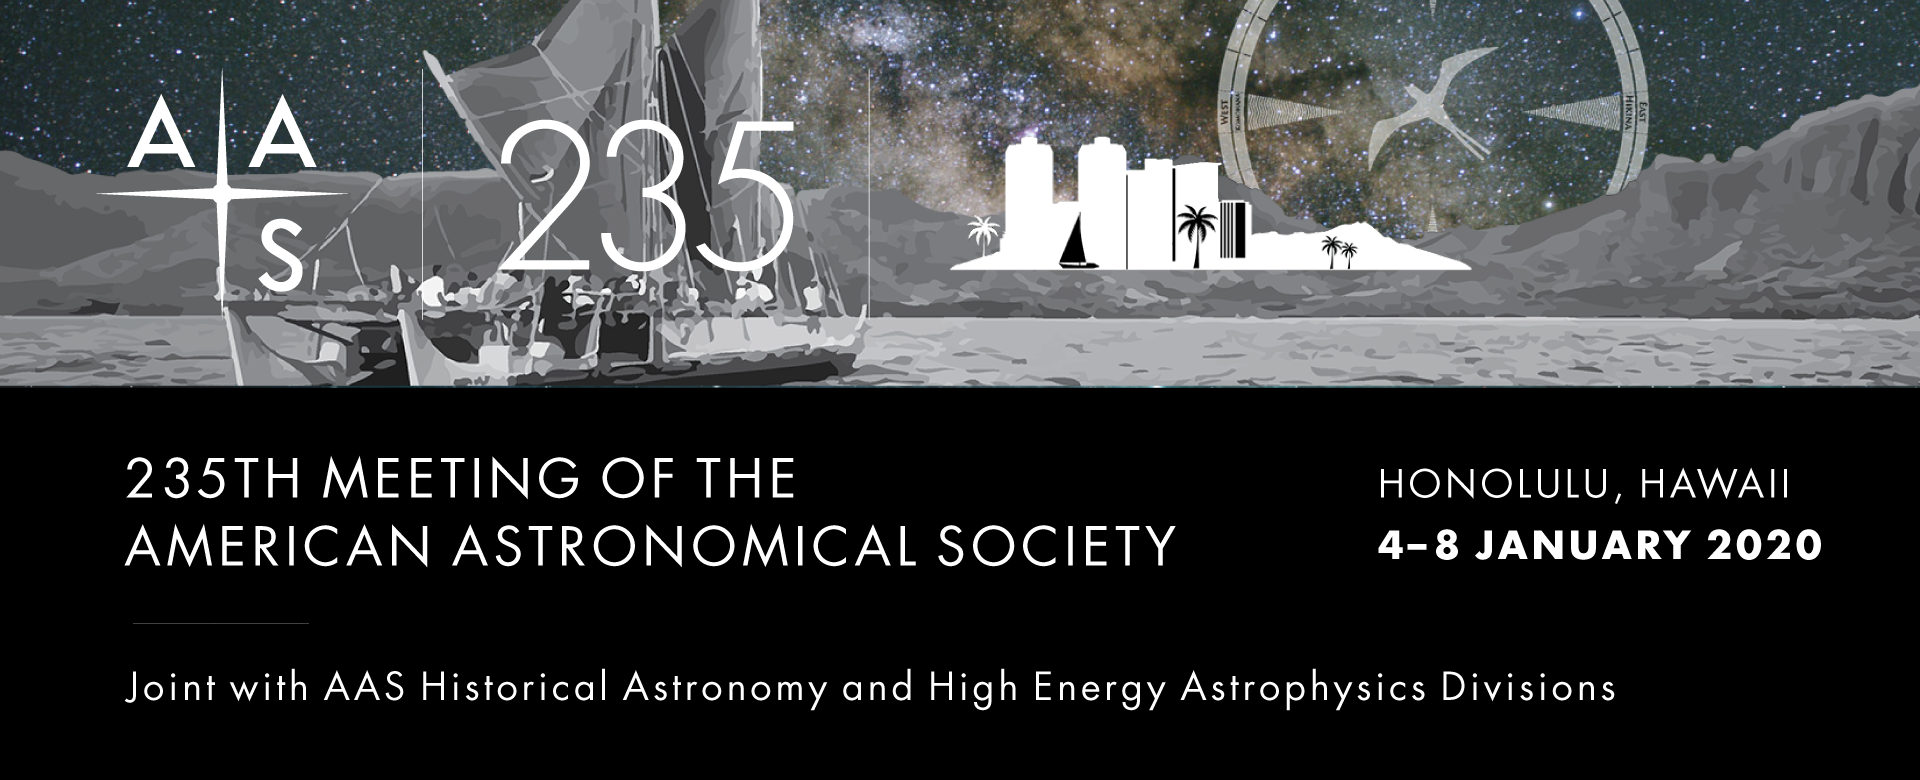 AAS 235 Banner